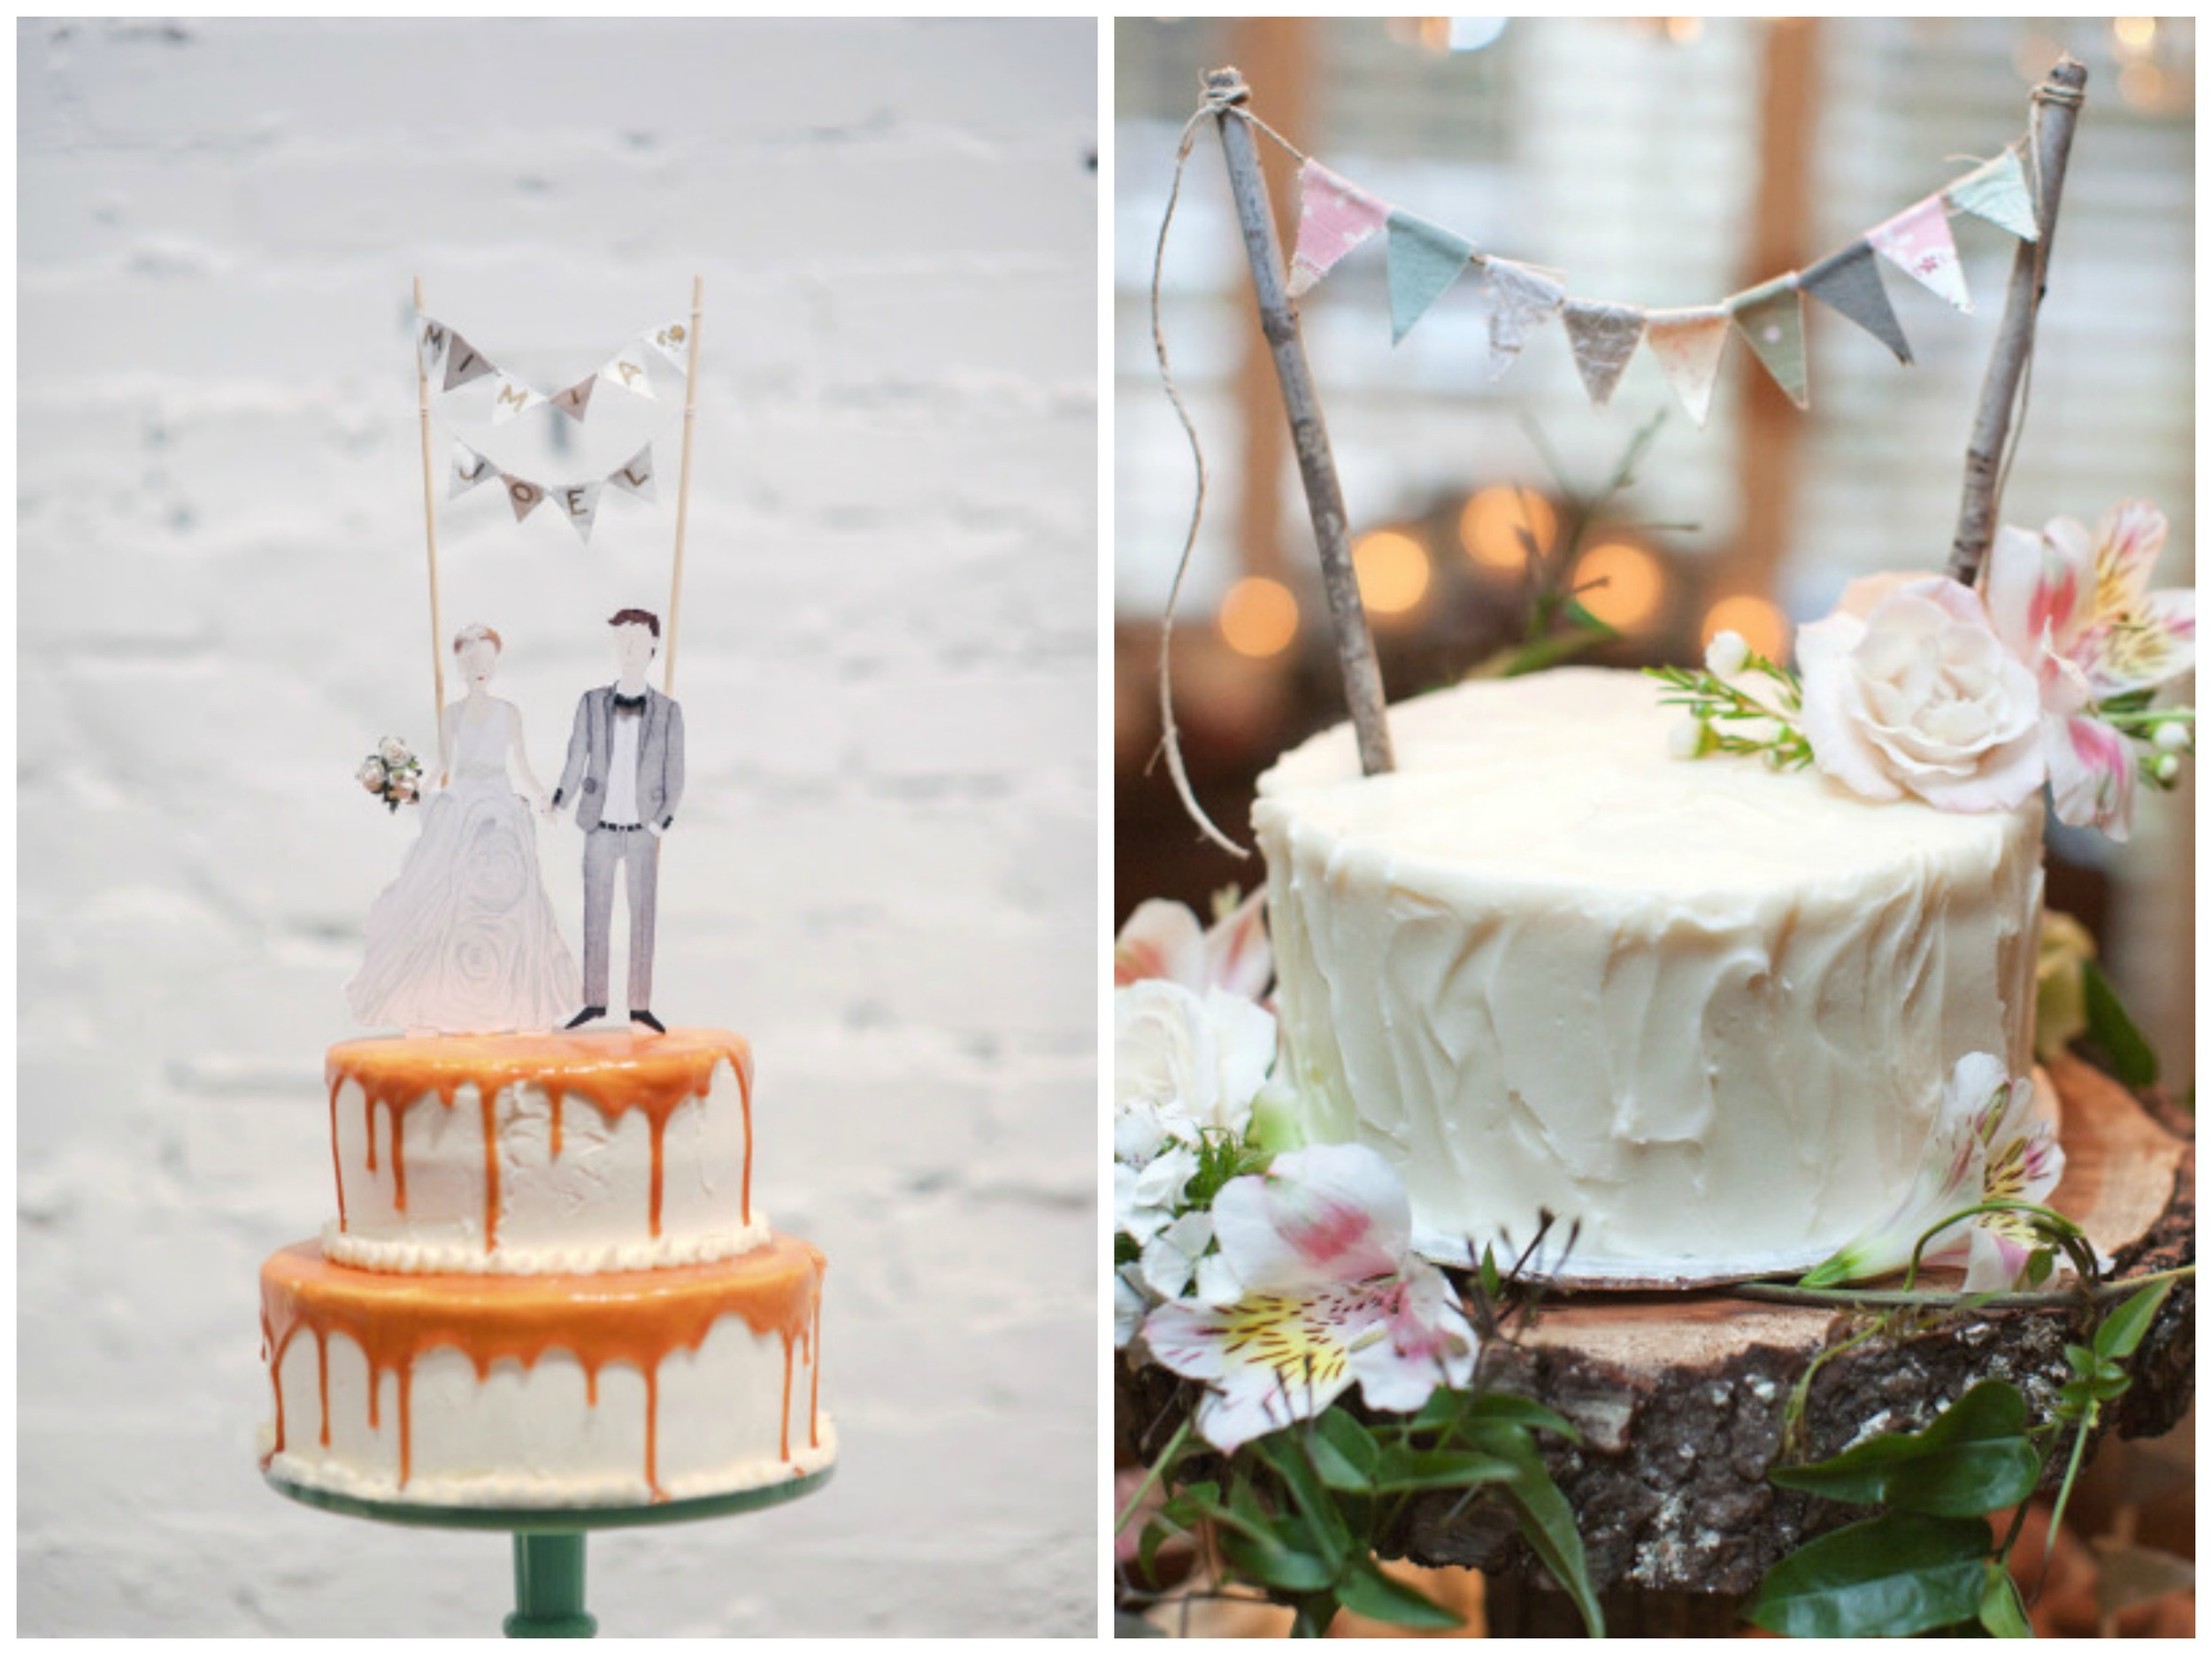 Style Me Pretty ;  Style Me Pretty . Bunting cake toppers are always a good idea. They'd be easy to DIY, which means you'd save some money. That painted bride and groom topper is stunning, too.